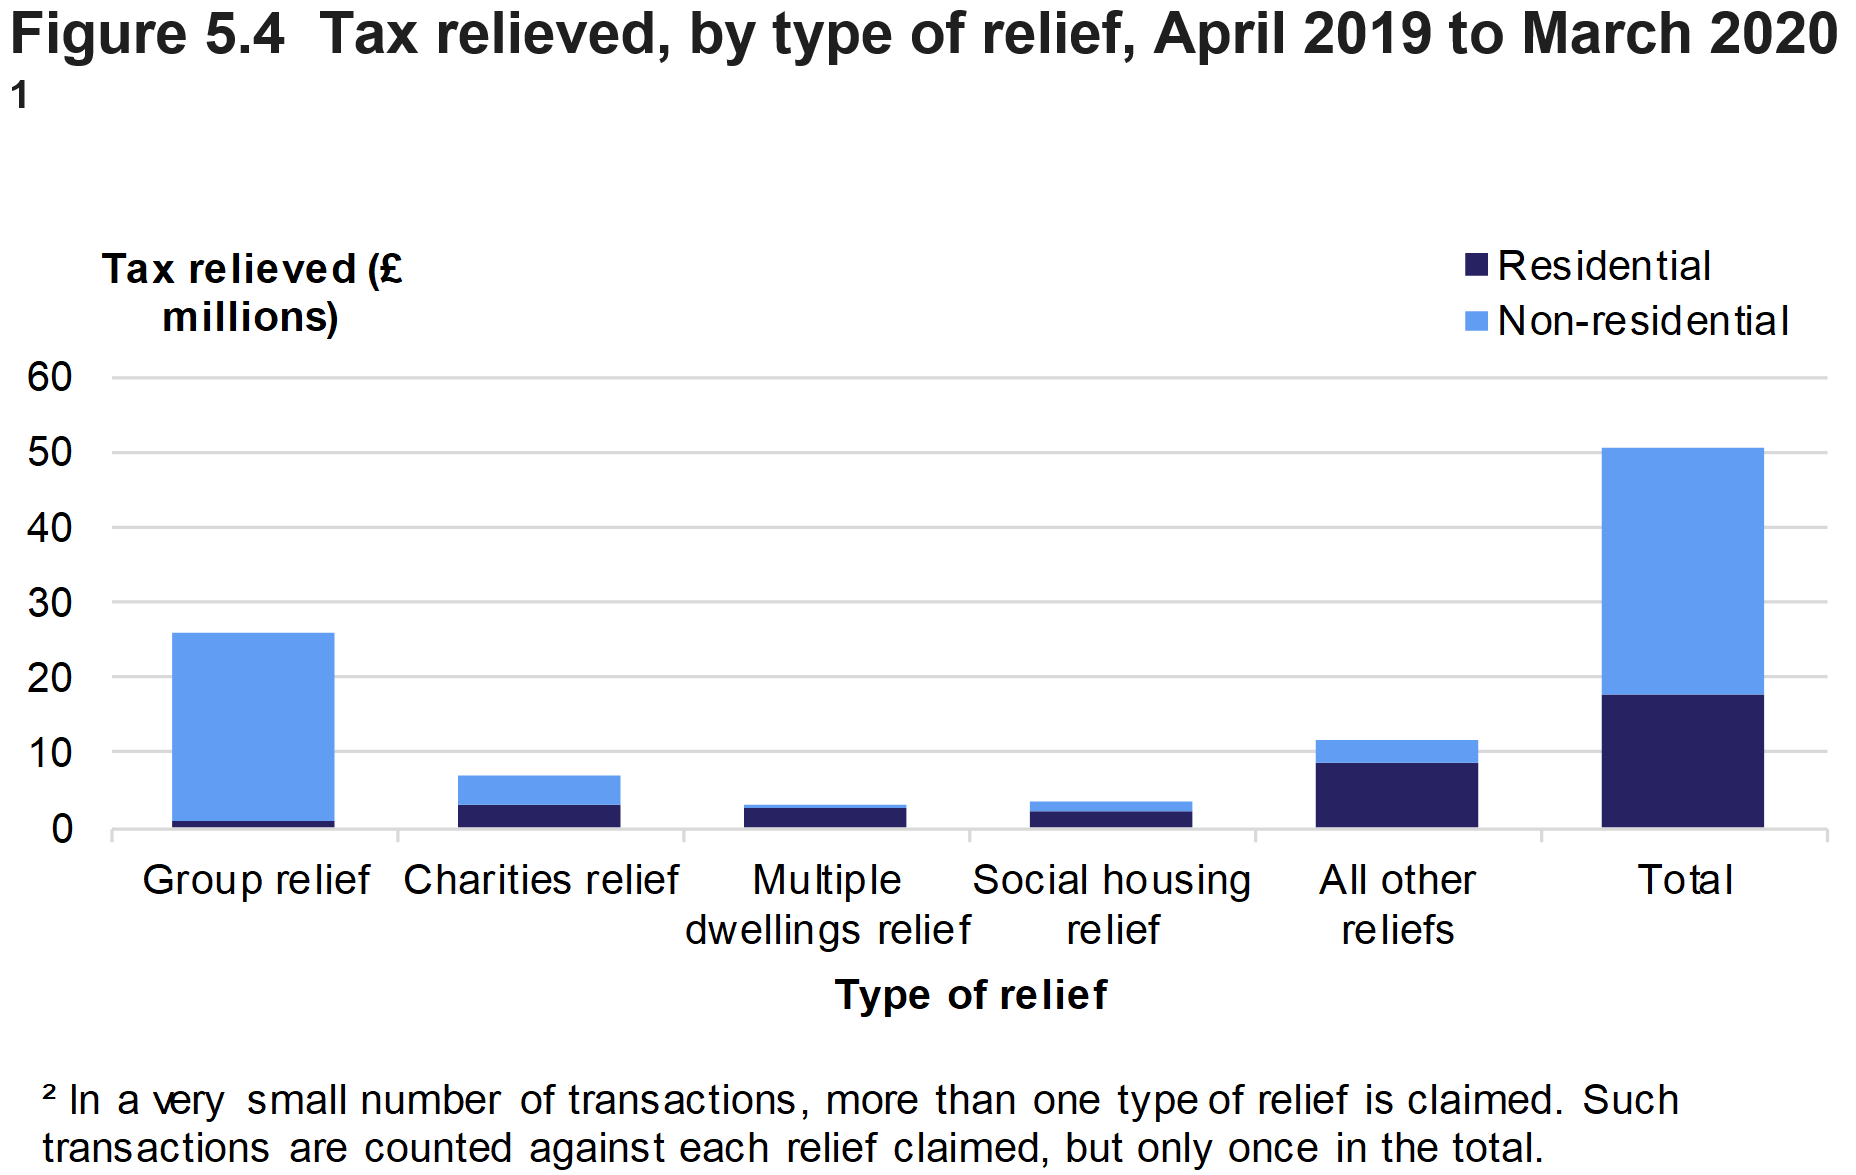 Figure 5.4 shows the amount of tax relieved on residential and non-residential transactions effective in April 2019 to March 2020, by type of relief.